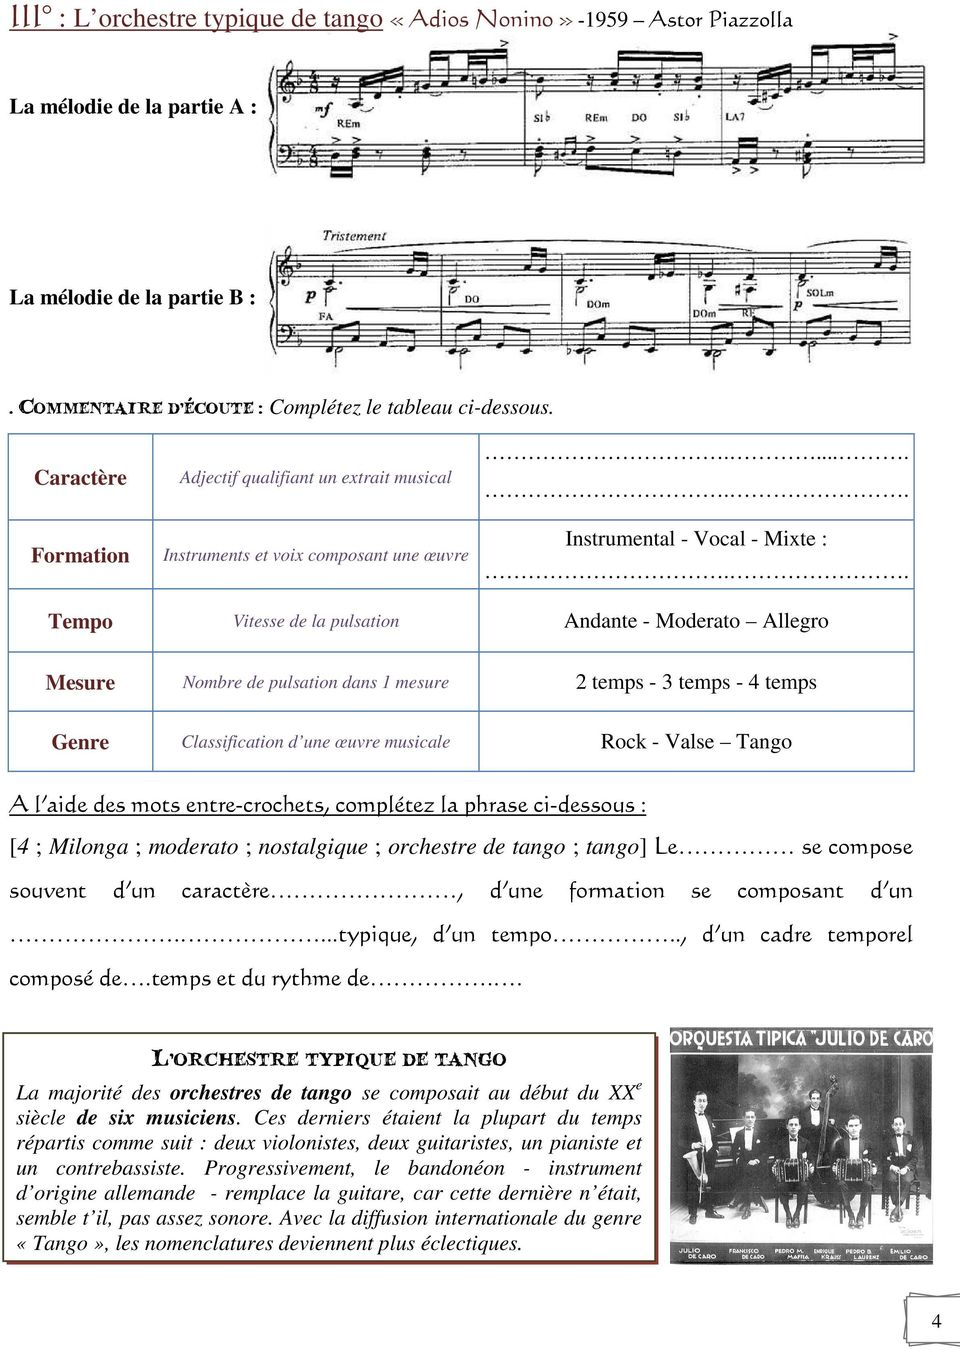 . Tempo Vitesse de la pulsation Andante - Moderato Allegro Mesure Nombre de pulsation dans 1 mesure 2 temps - 3 temps - 4 temps Genre Classification d une œuvre musicale Rock - Valse Tango [4 ;